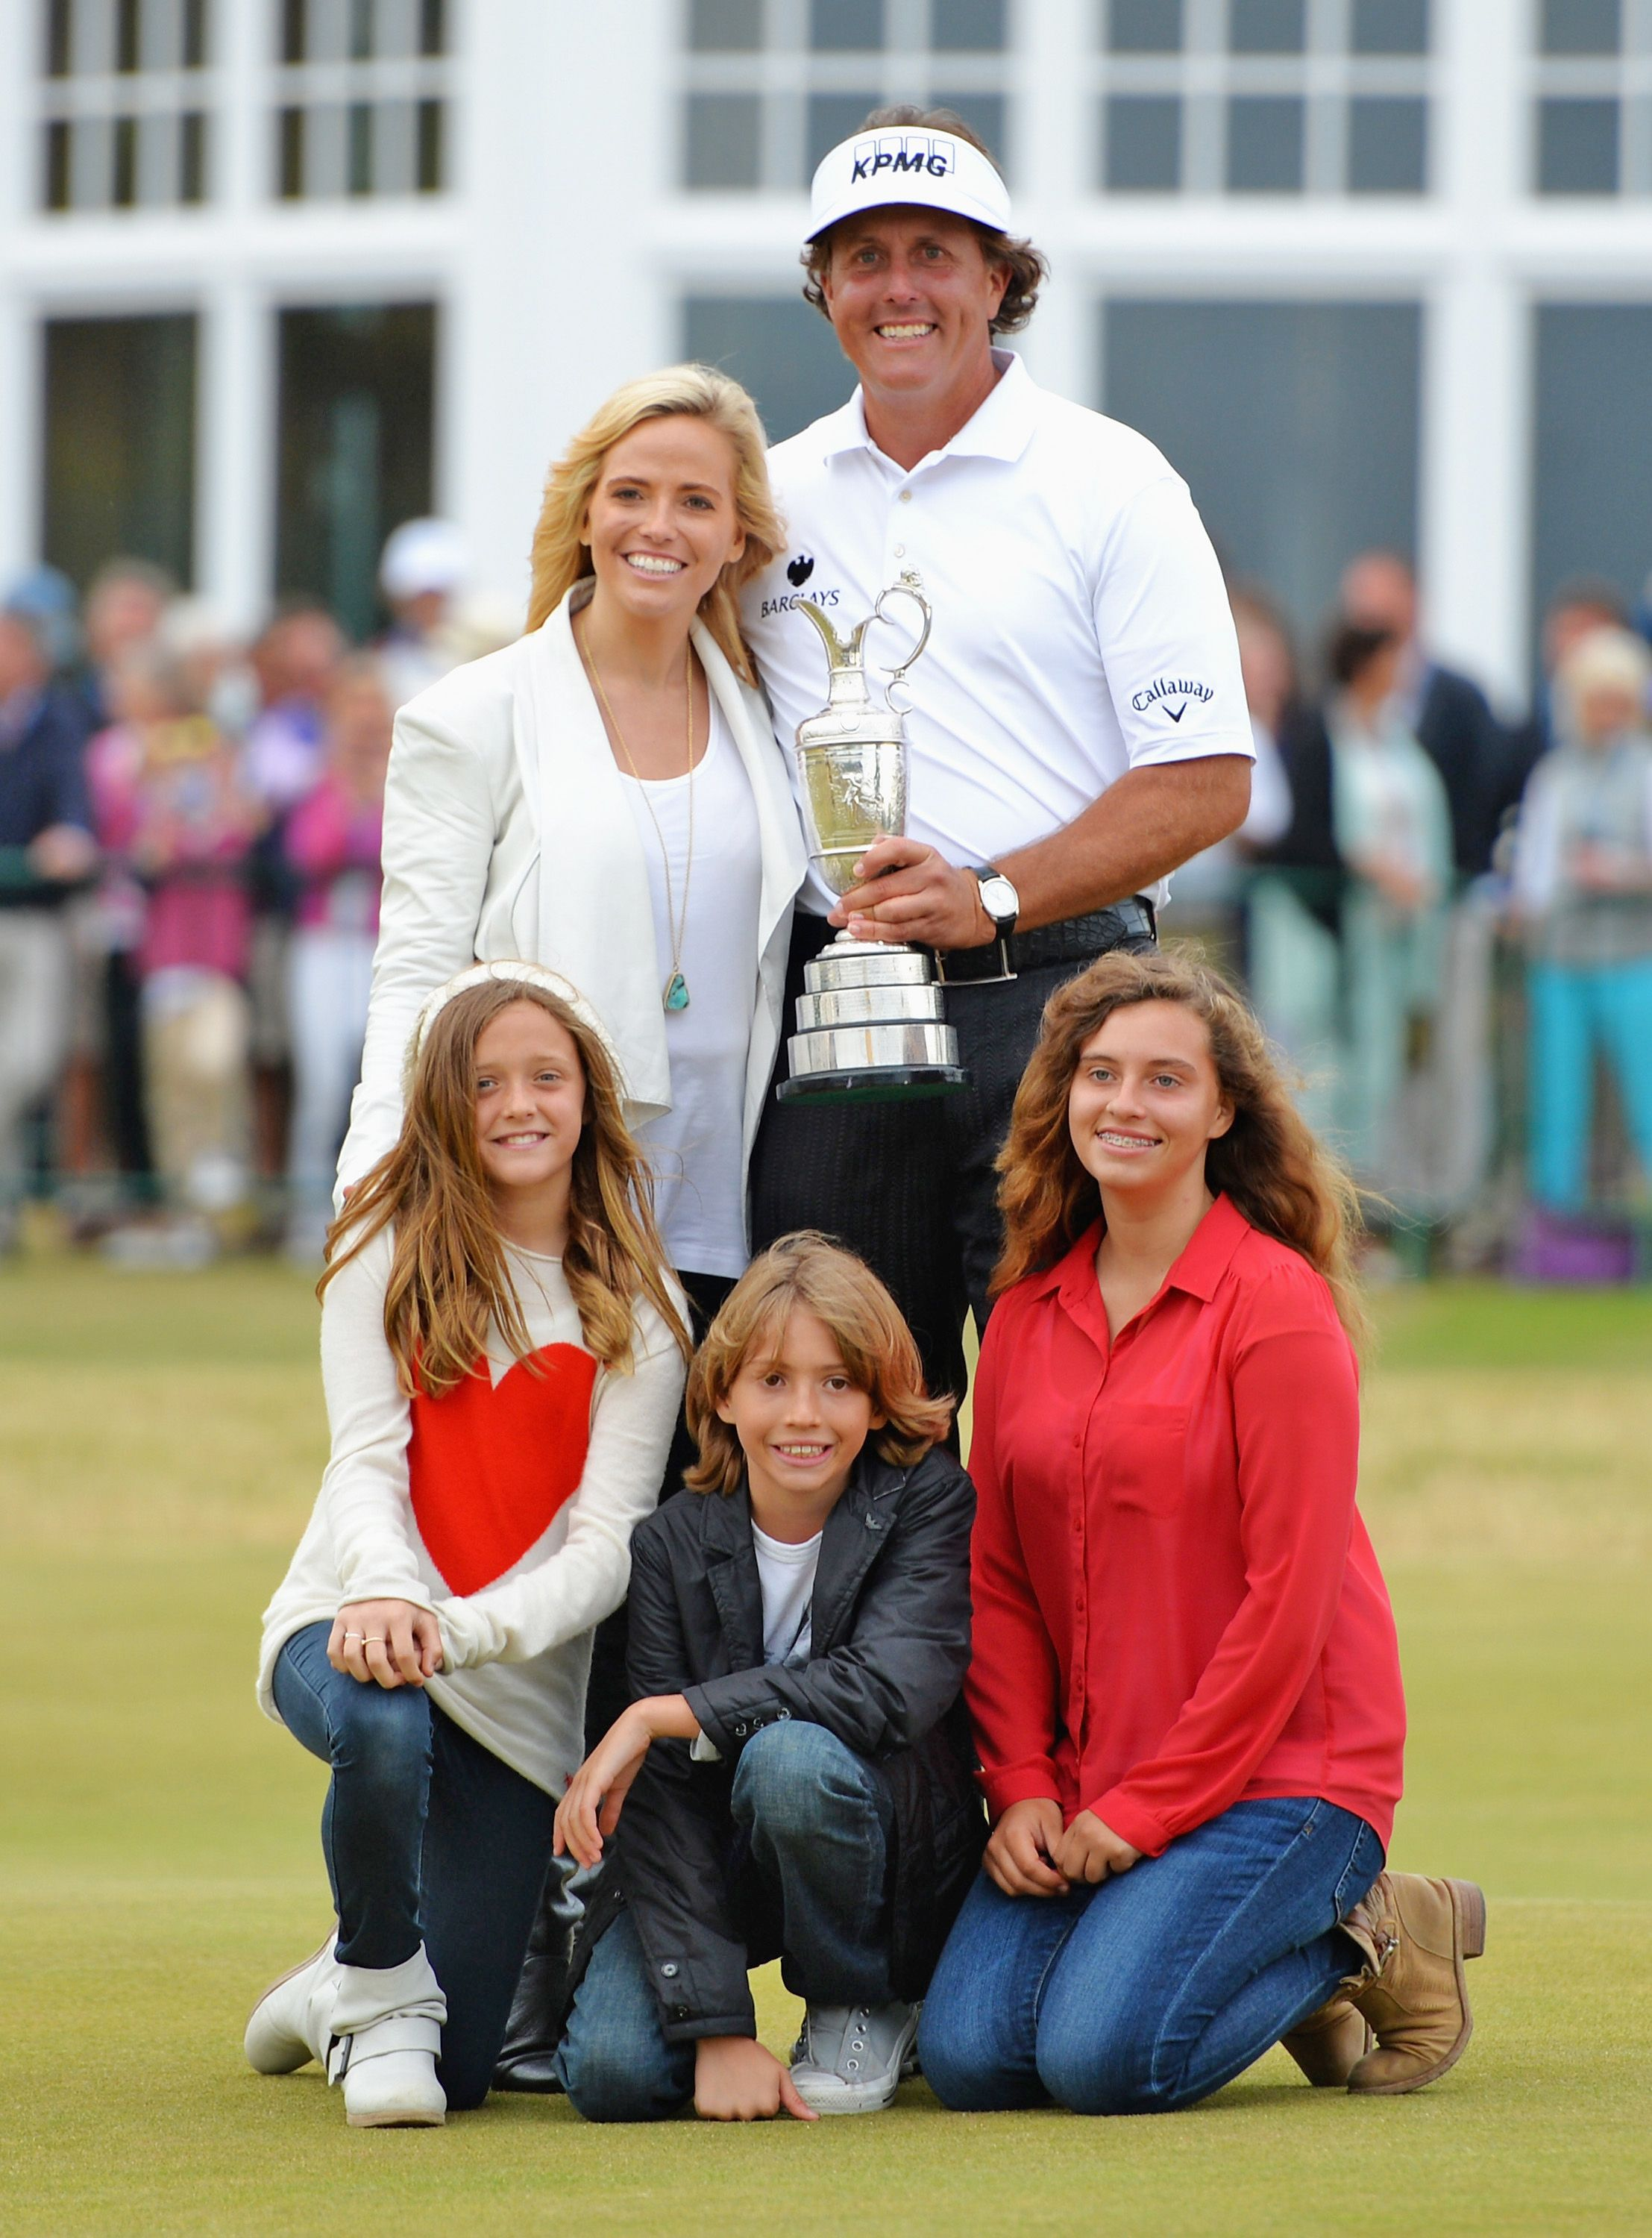 Phil Mickelson wife Amy and children Evan, Amanda and Sophia after winning the 142nd Open Championship in 2013 in Scotland | Source: Getty